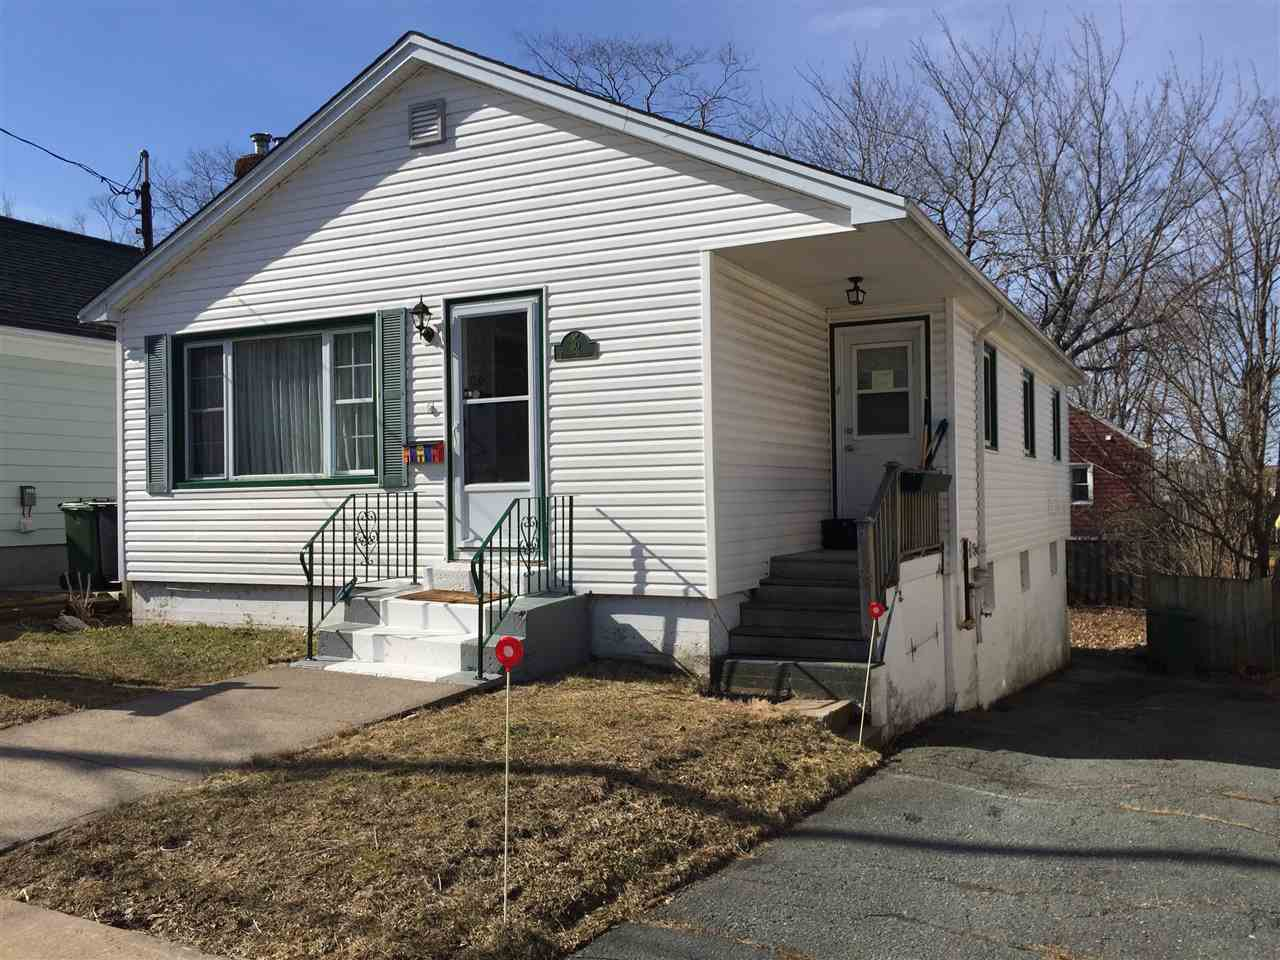 Main Photo: 30 ESDAILE Avenue in Dartmouth: 12-Southdale, Manor Park Residential for sale (Halifax-Dartmouth)  : MLS®# 202003314